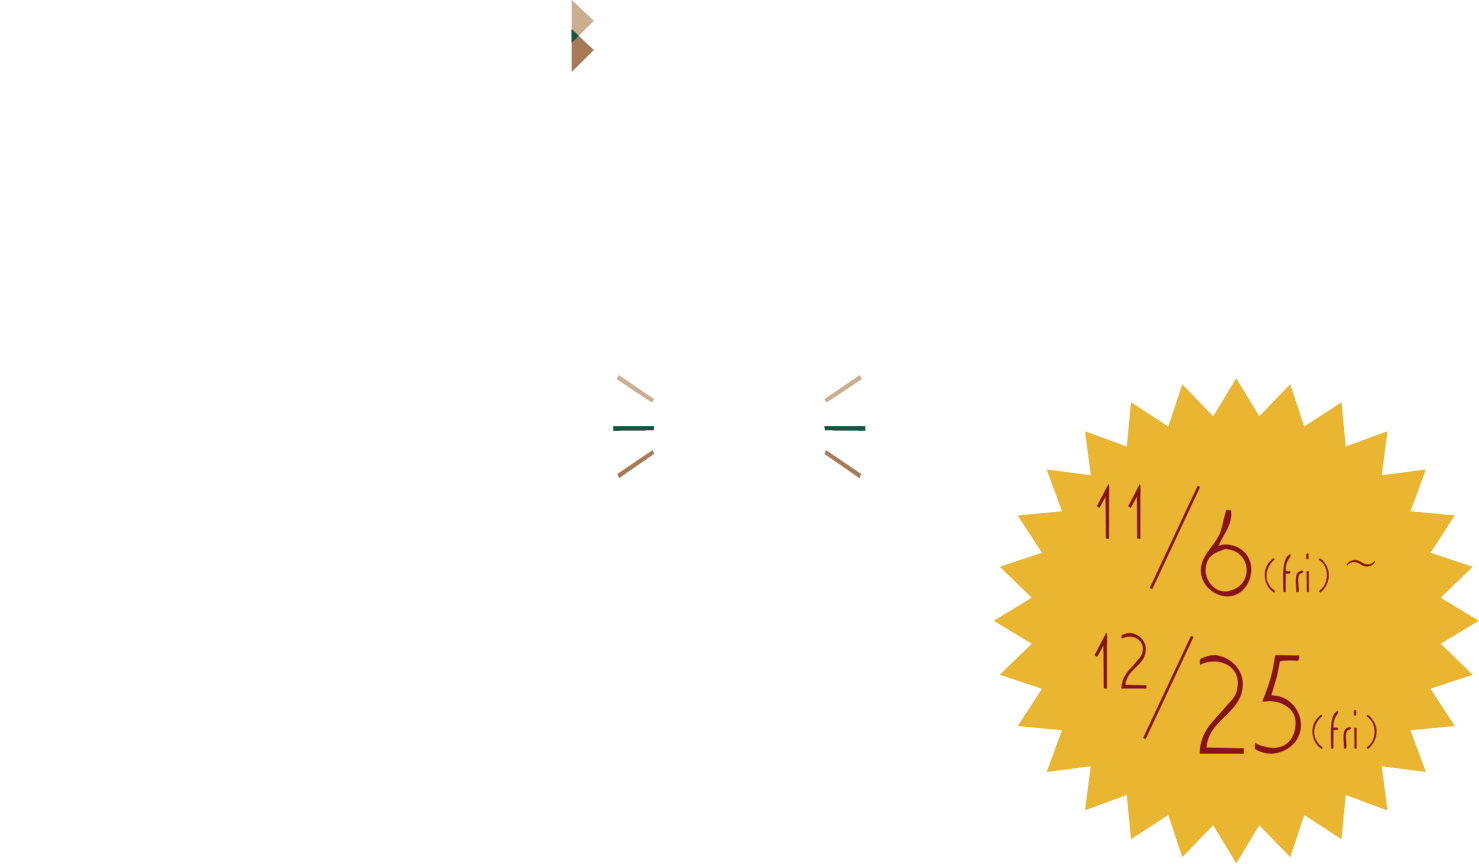 smiling 7 weeks 11/6(fri)〜12/25(fri) 12/10(thu) GRAND OPEN DAY